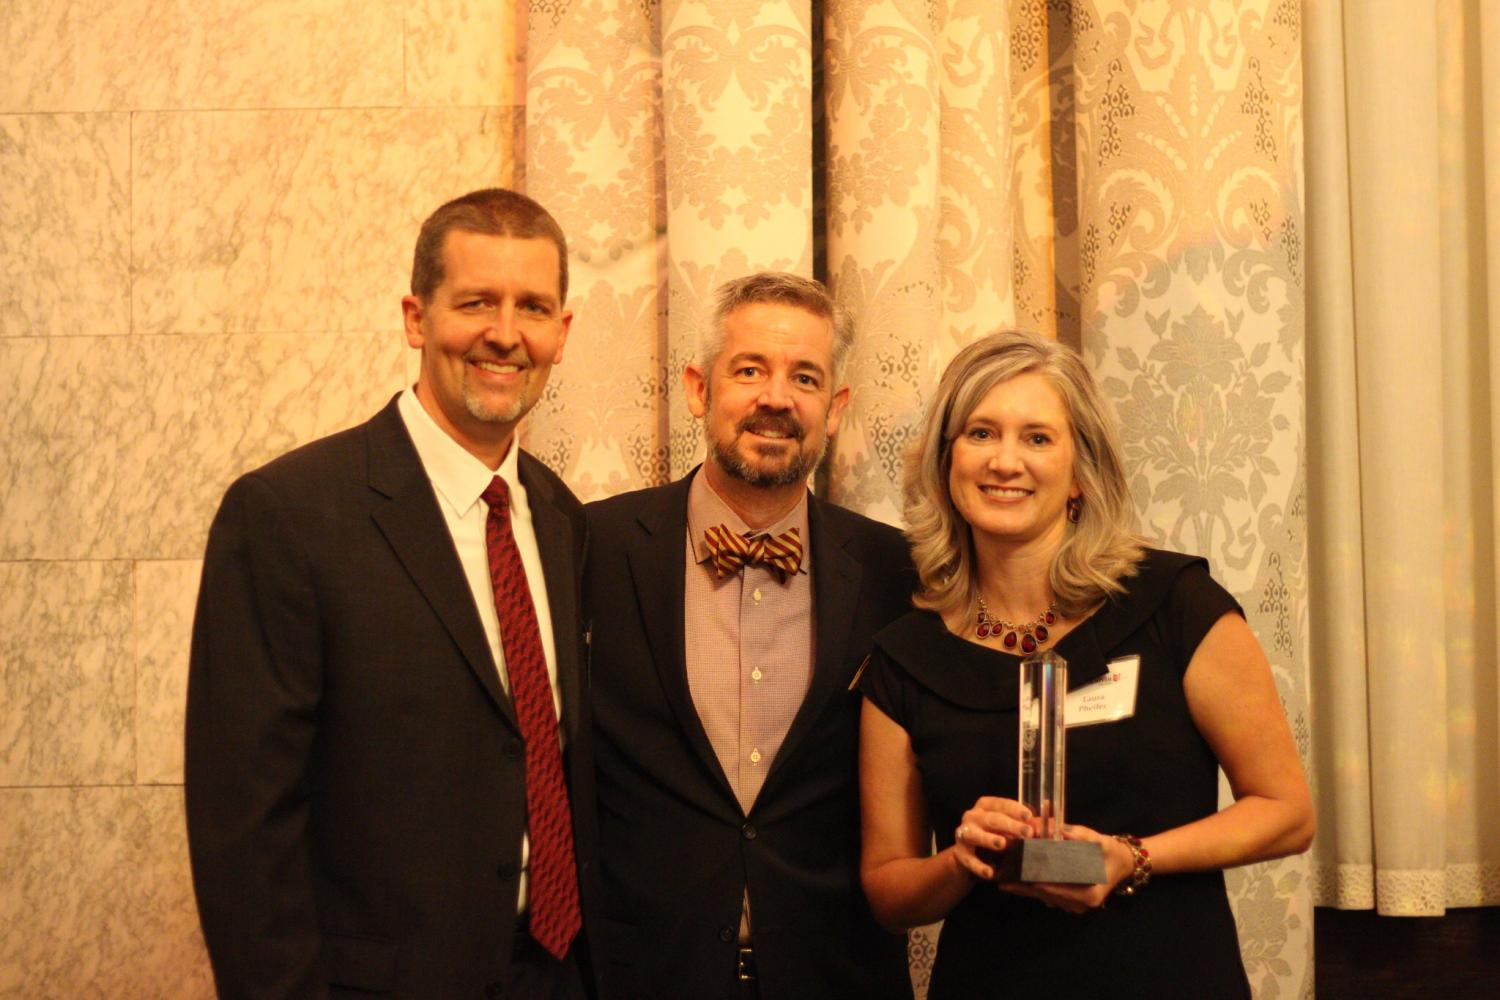 Todd and Laura Pheifer were two of the winners of this year's Outstanding Service Award. Photo by Yooyoung Kwon.